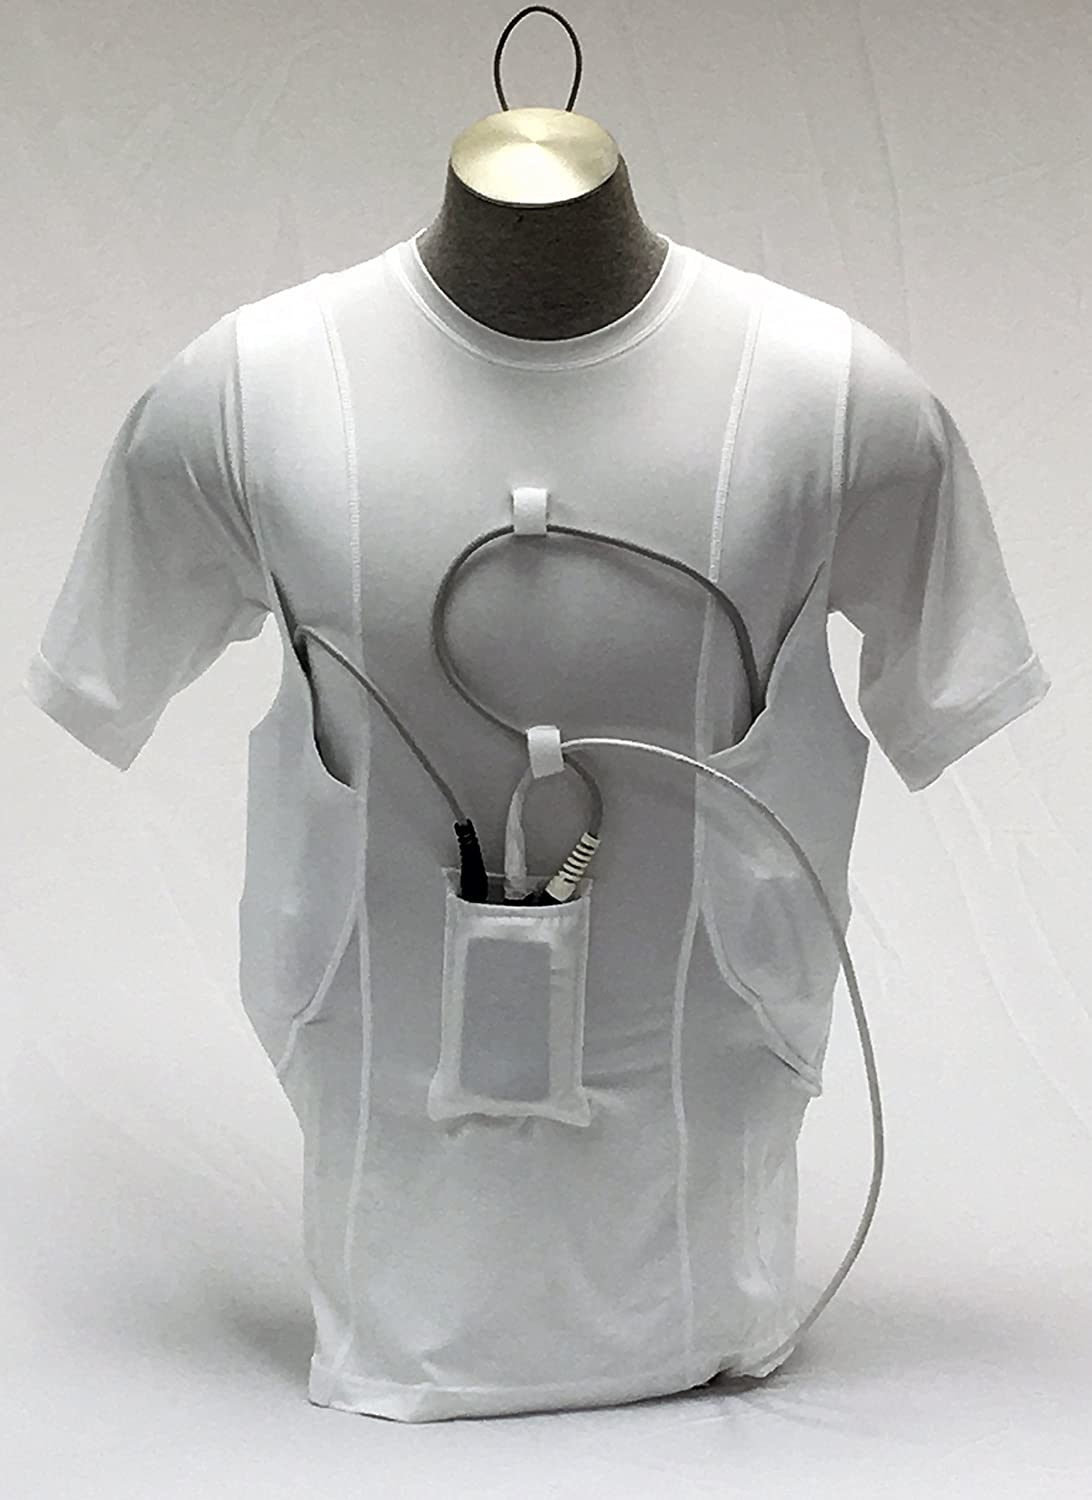 Gorgeous HEARTMATE LVAD Shirt by Small White GEAR